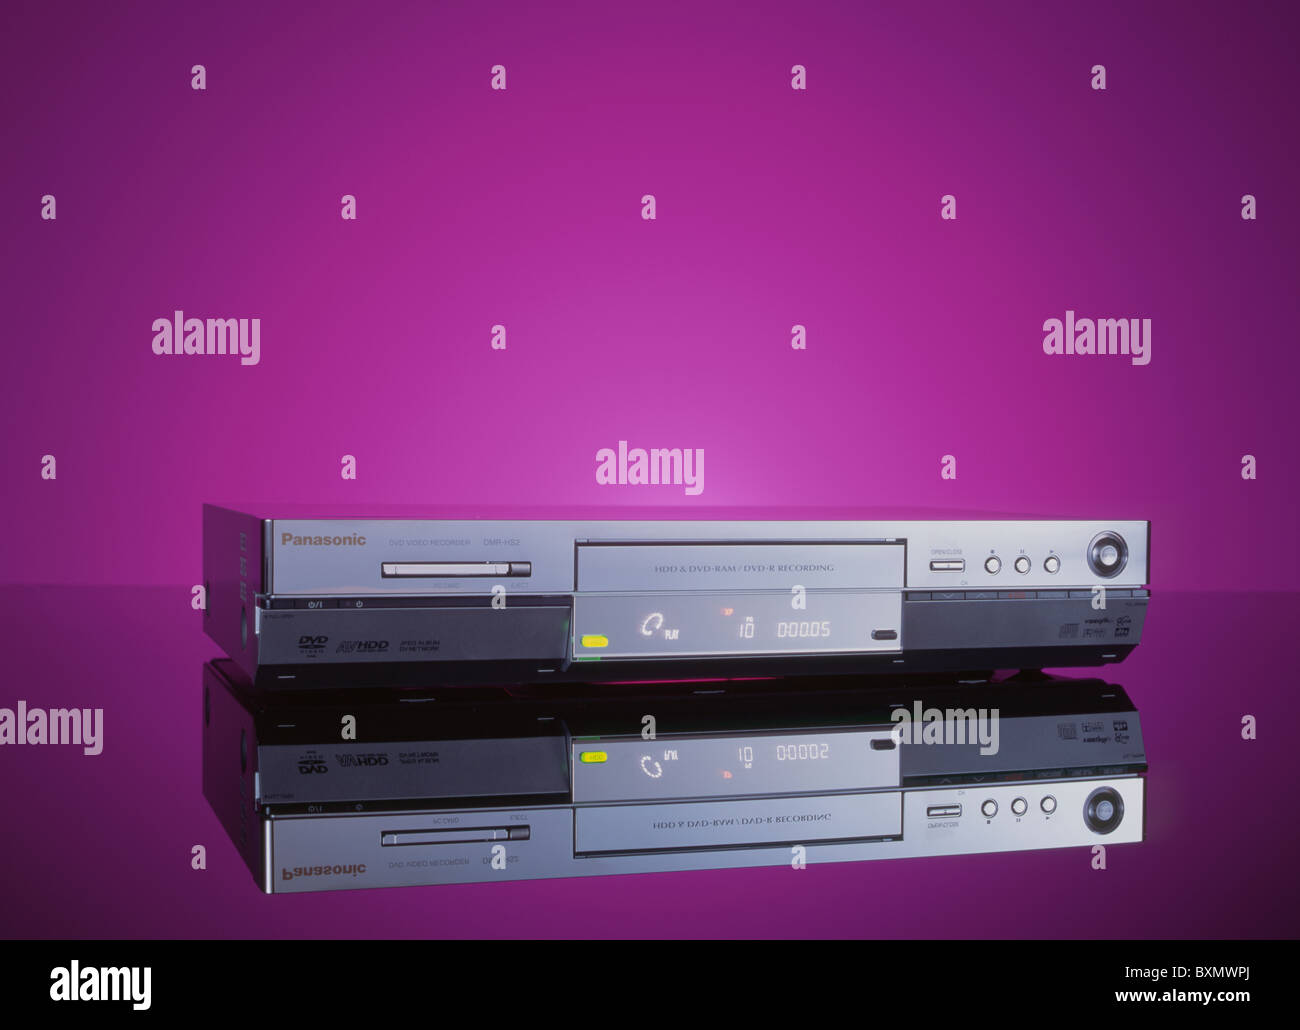 Panasonic DVD video recorder against a purple background - Stock Image